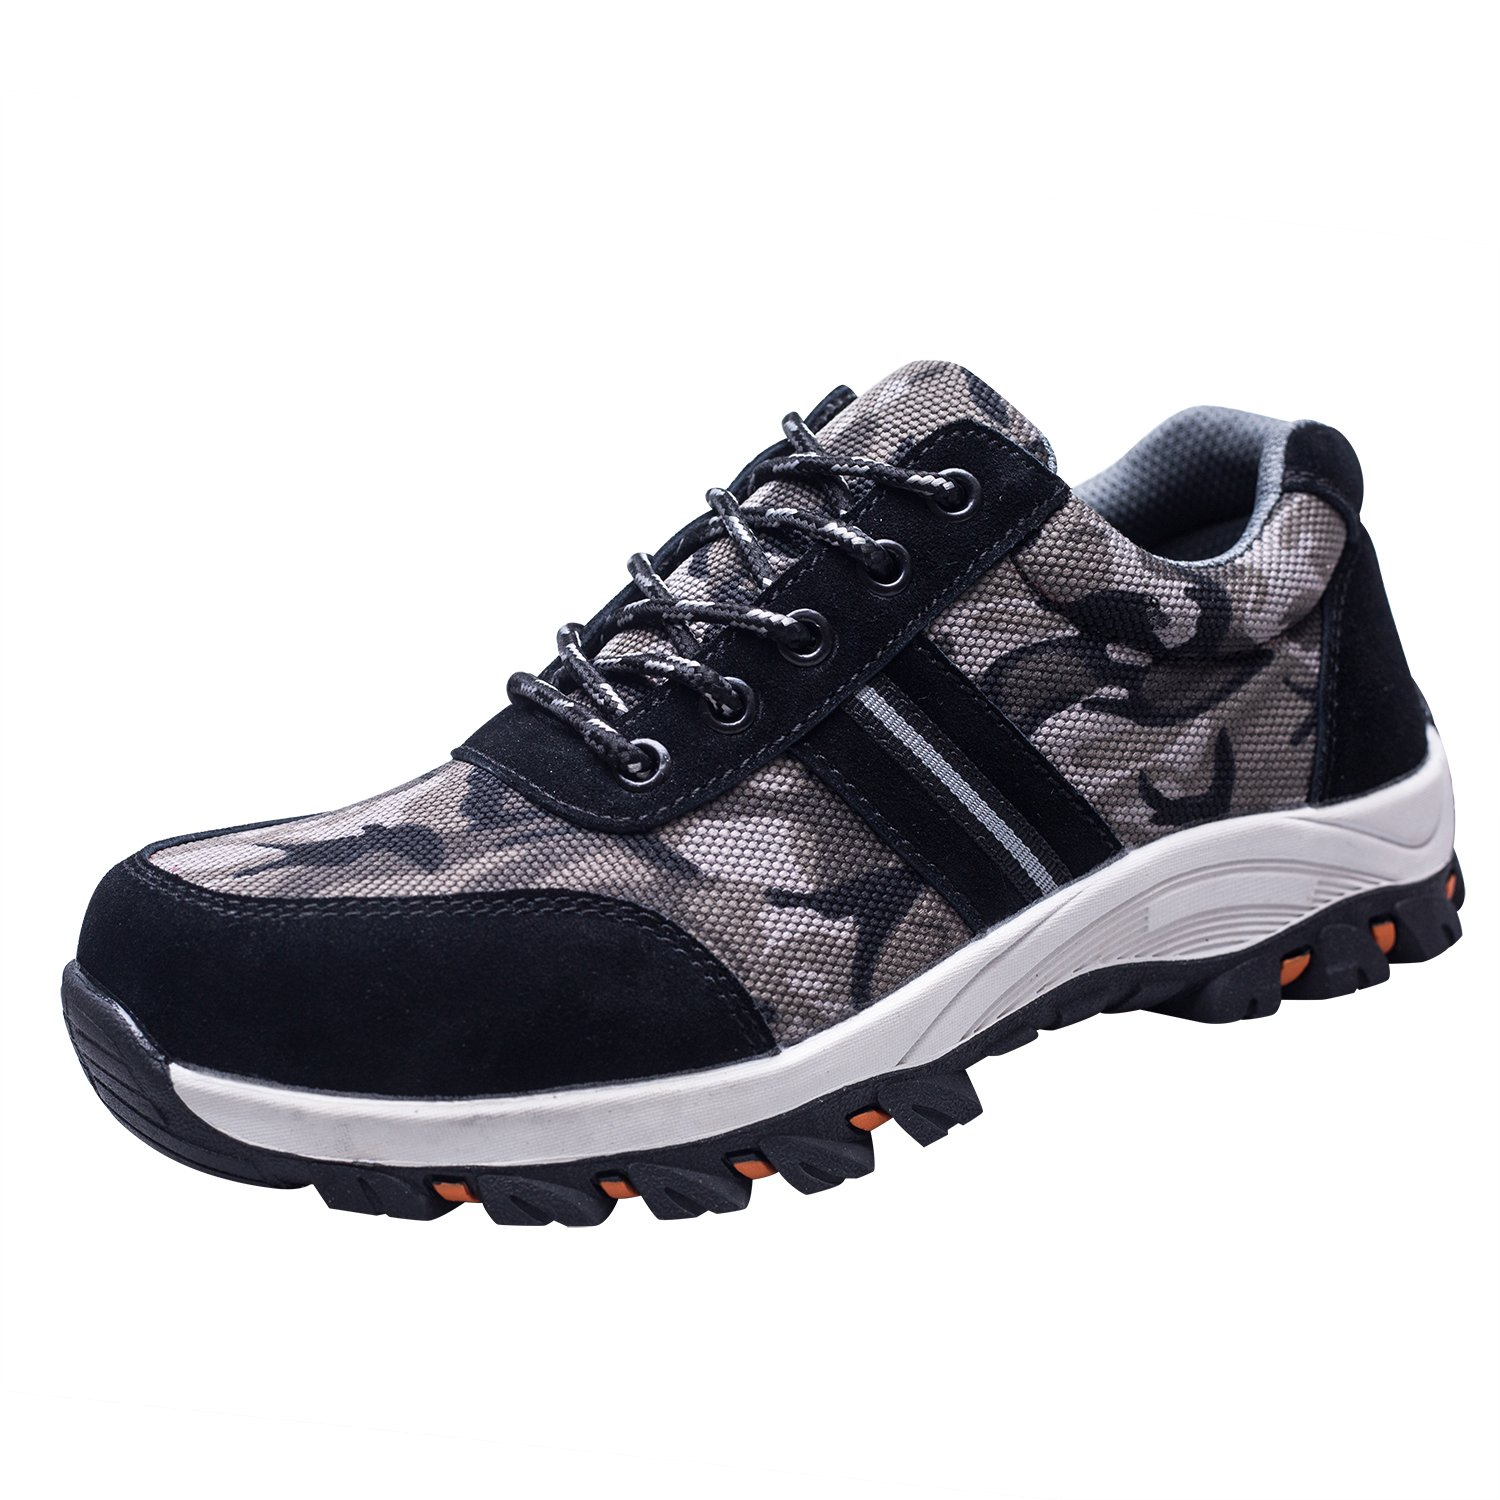 Optimal Women's Safety Shoes Work Shoes Protect Toe Shoes